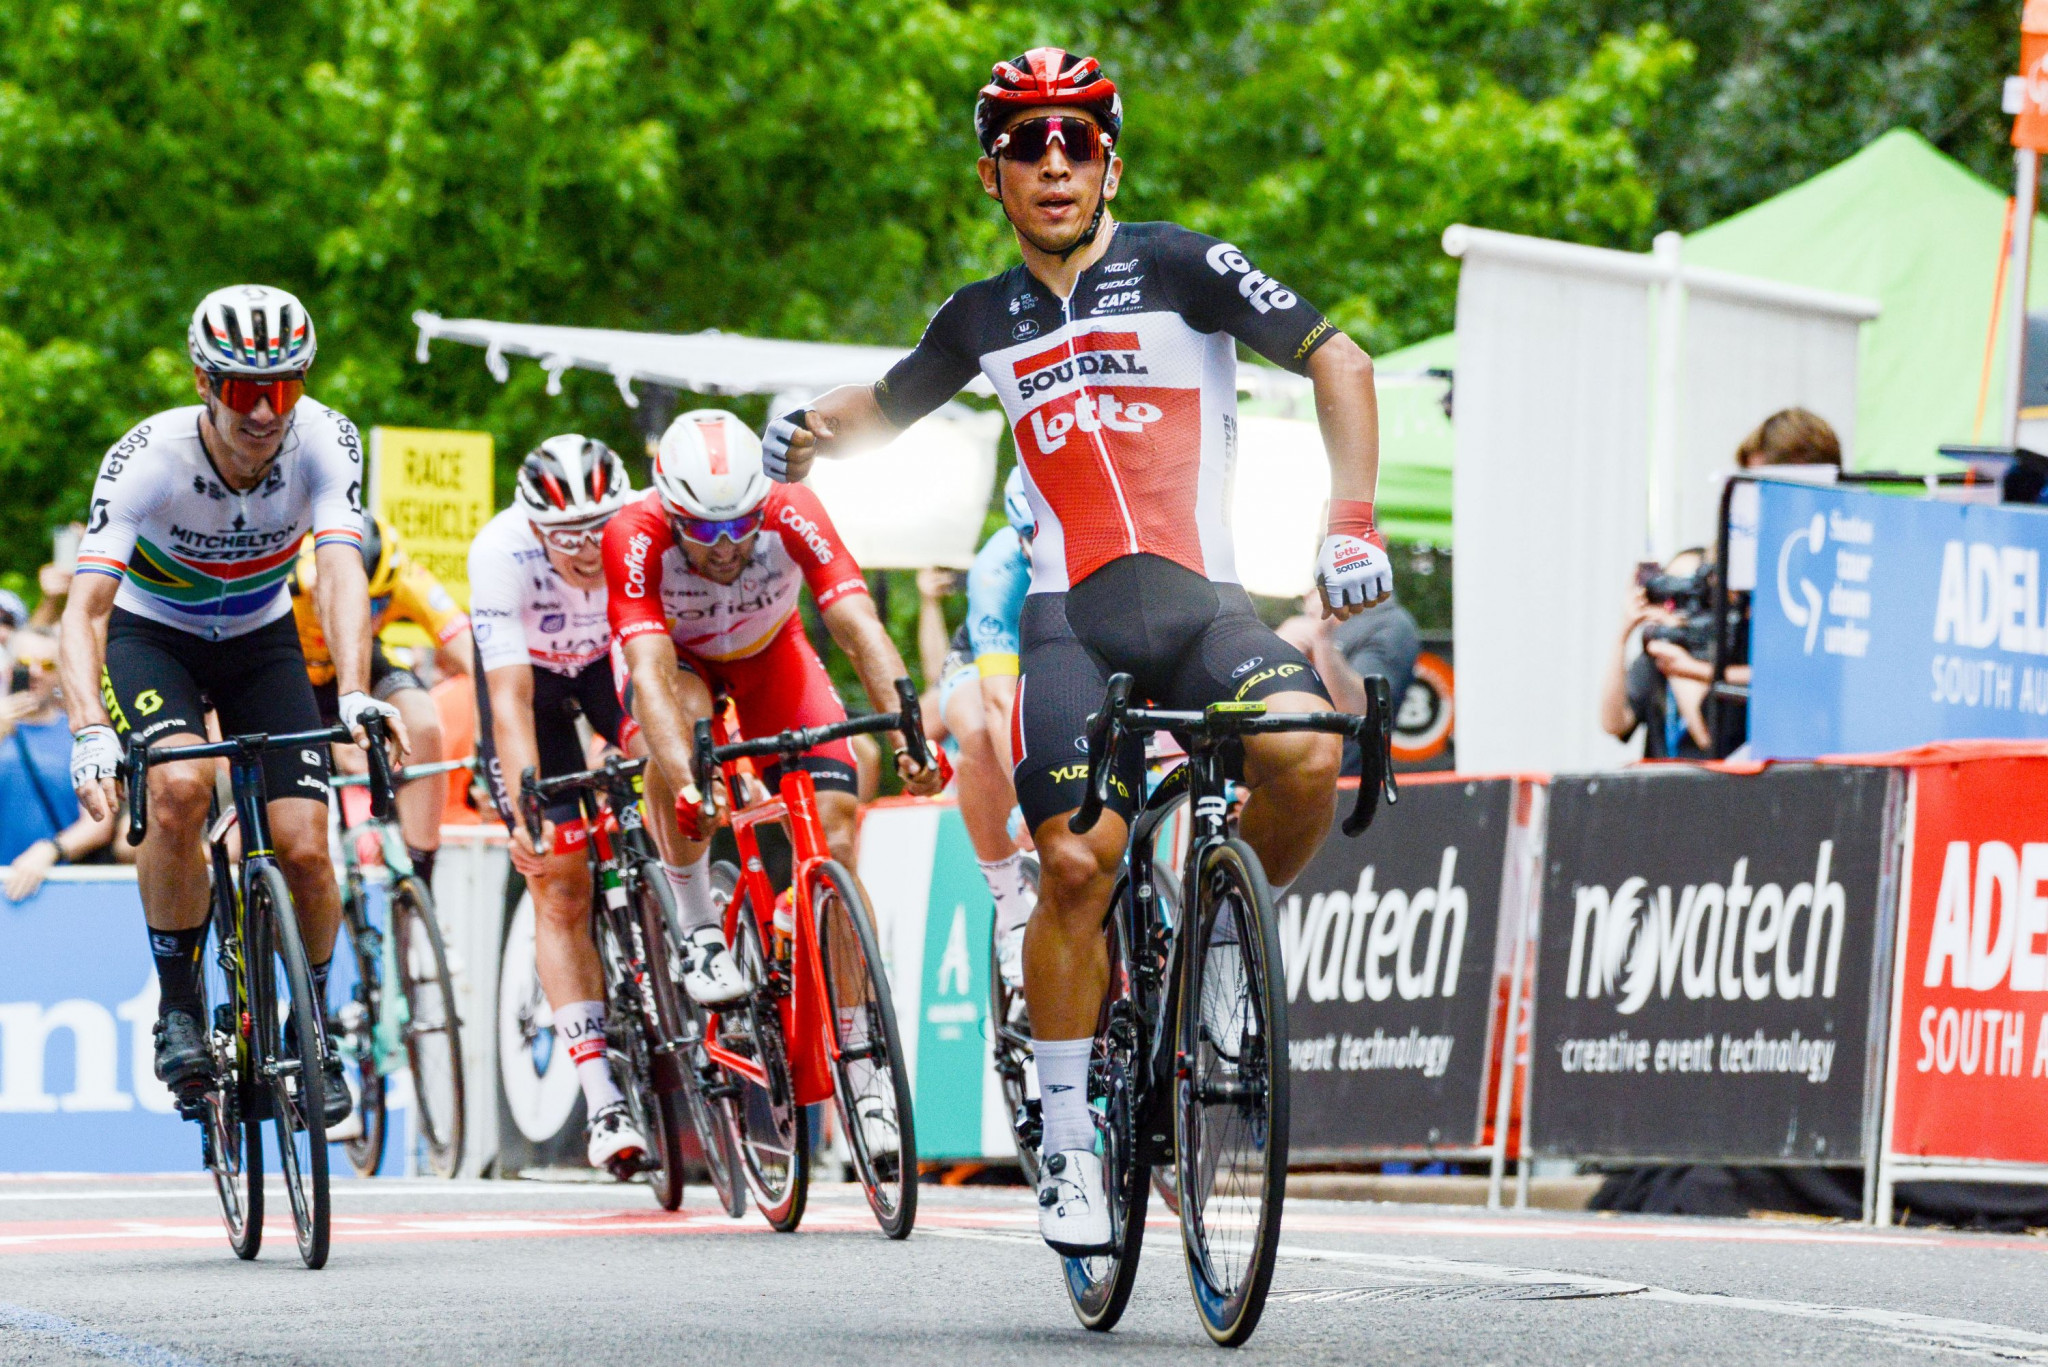 Ewan takes overall lead after second stage victory at Tour Down Under